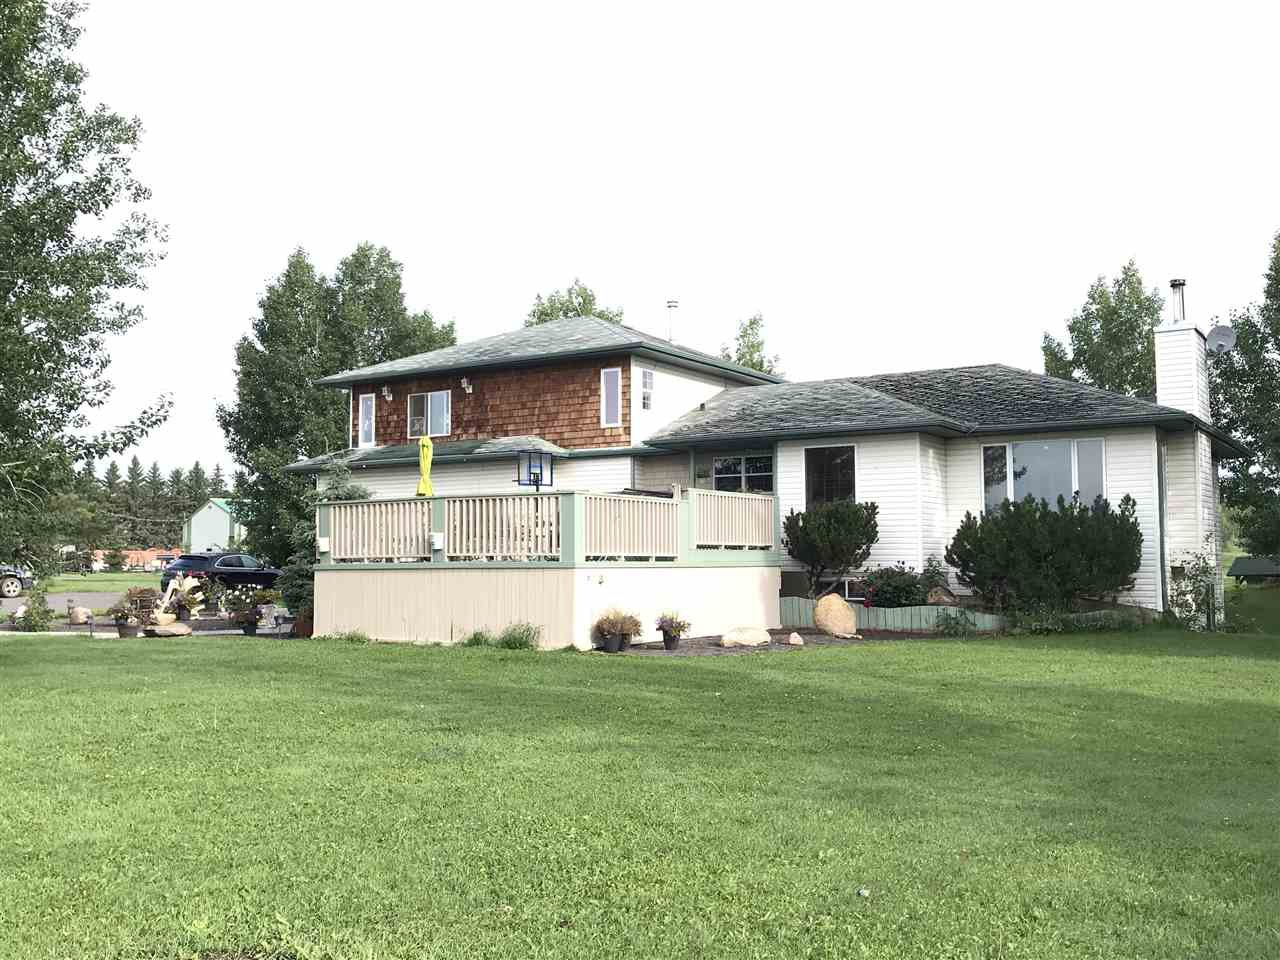 Main Photo: 54313 RGE RD 260: Rural Sturgeon County House for sale : MLS®# E4165824